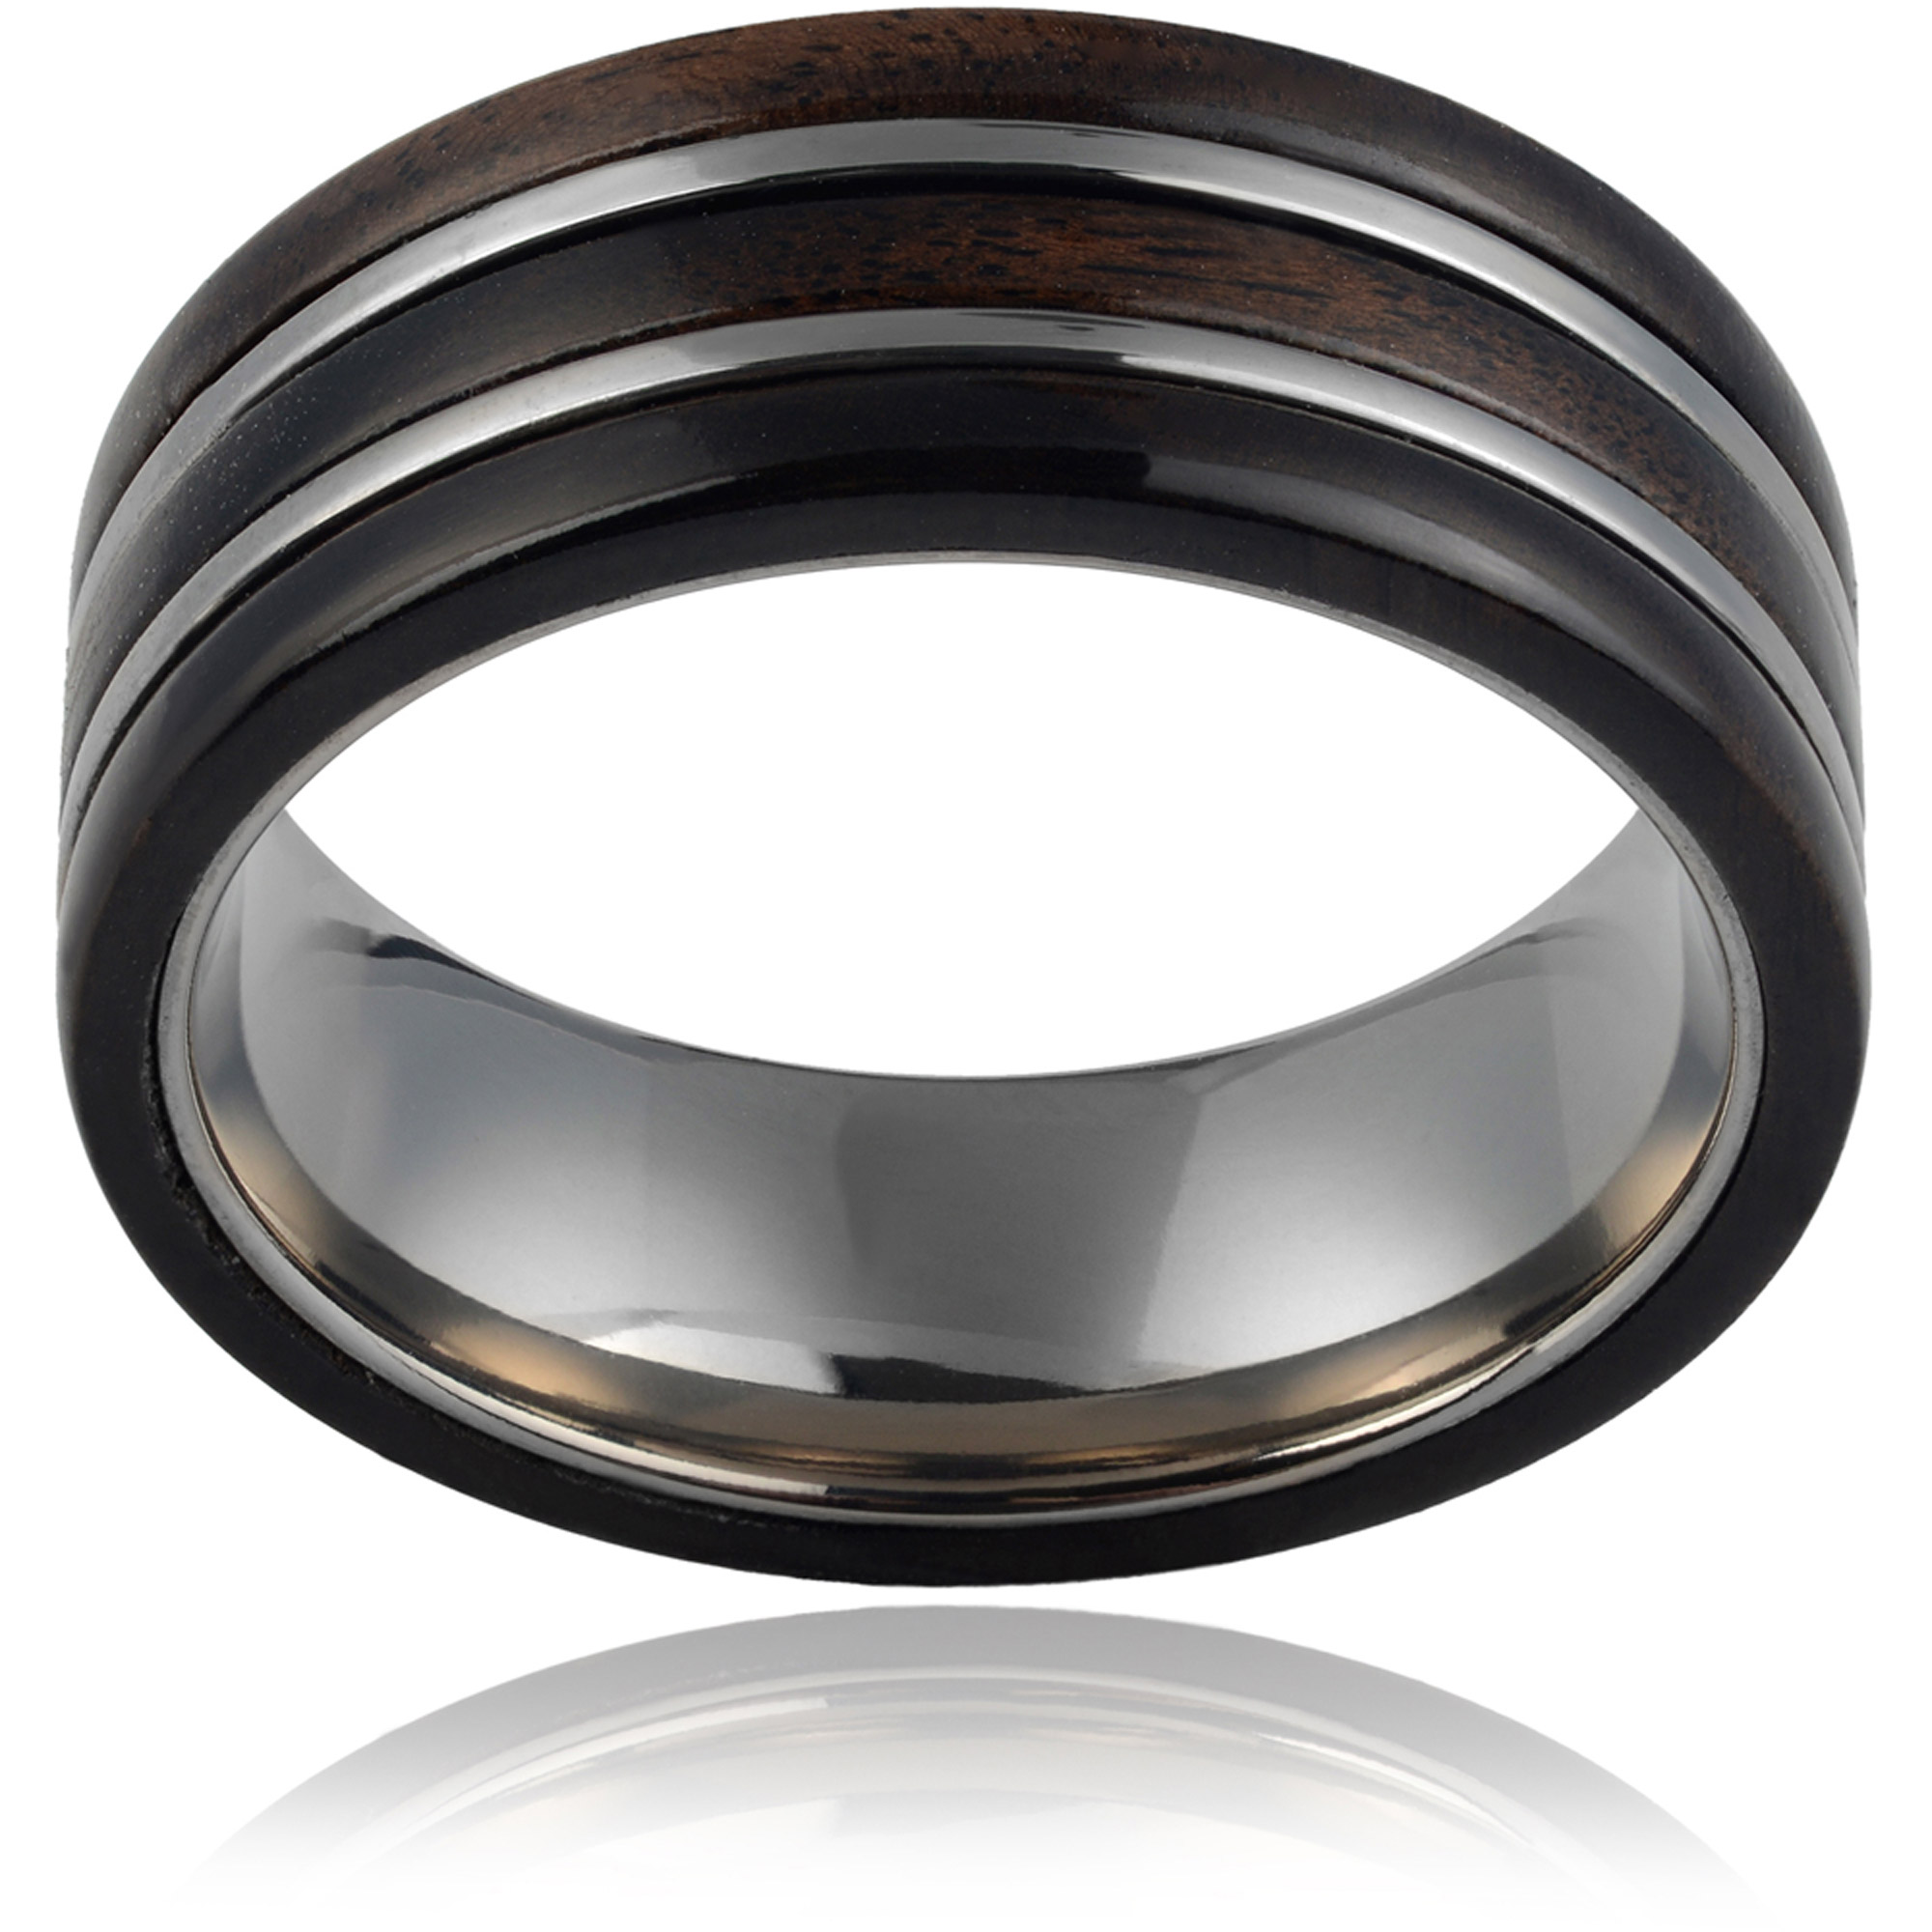 Daxx Men's Titanium Dark Hawaiian Koa Wood Inlay Fashion Ring